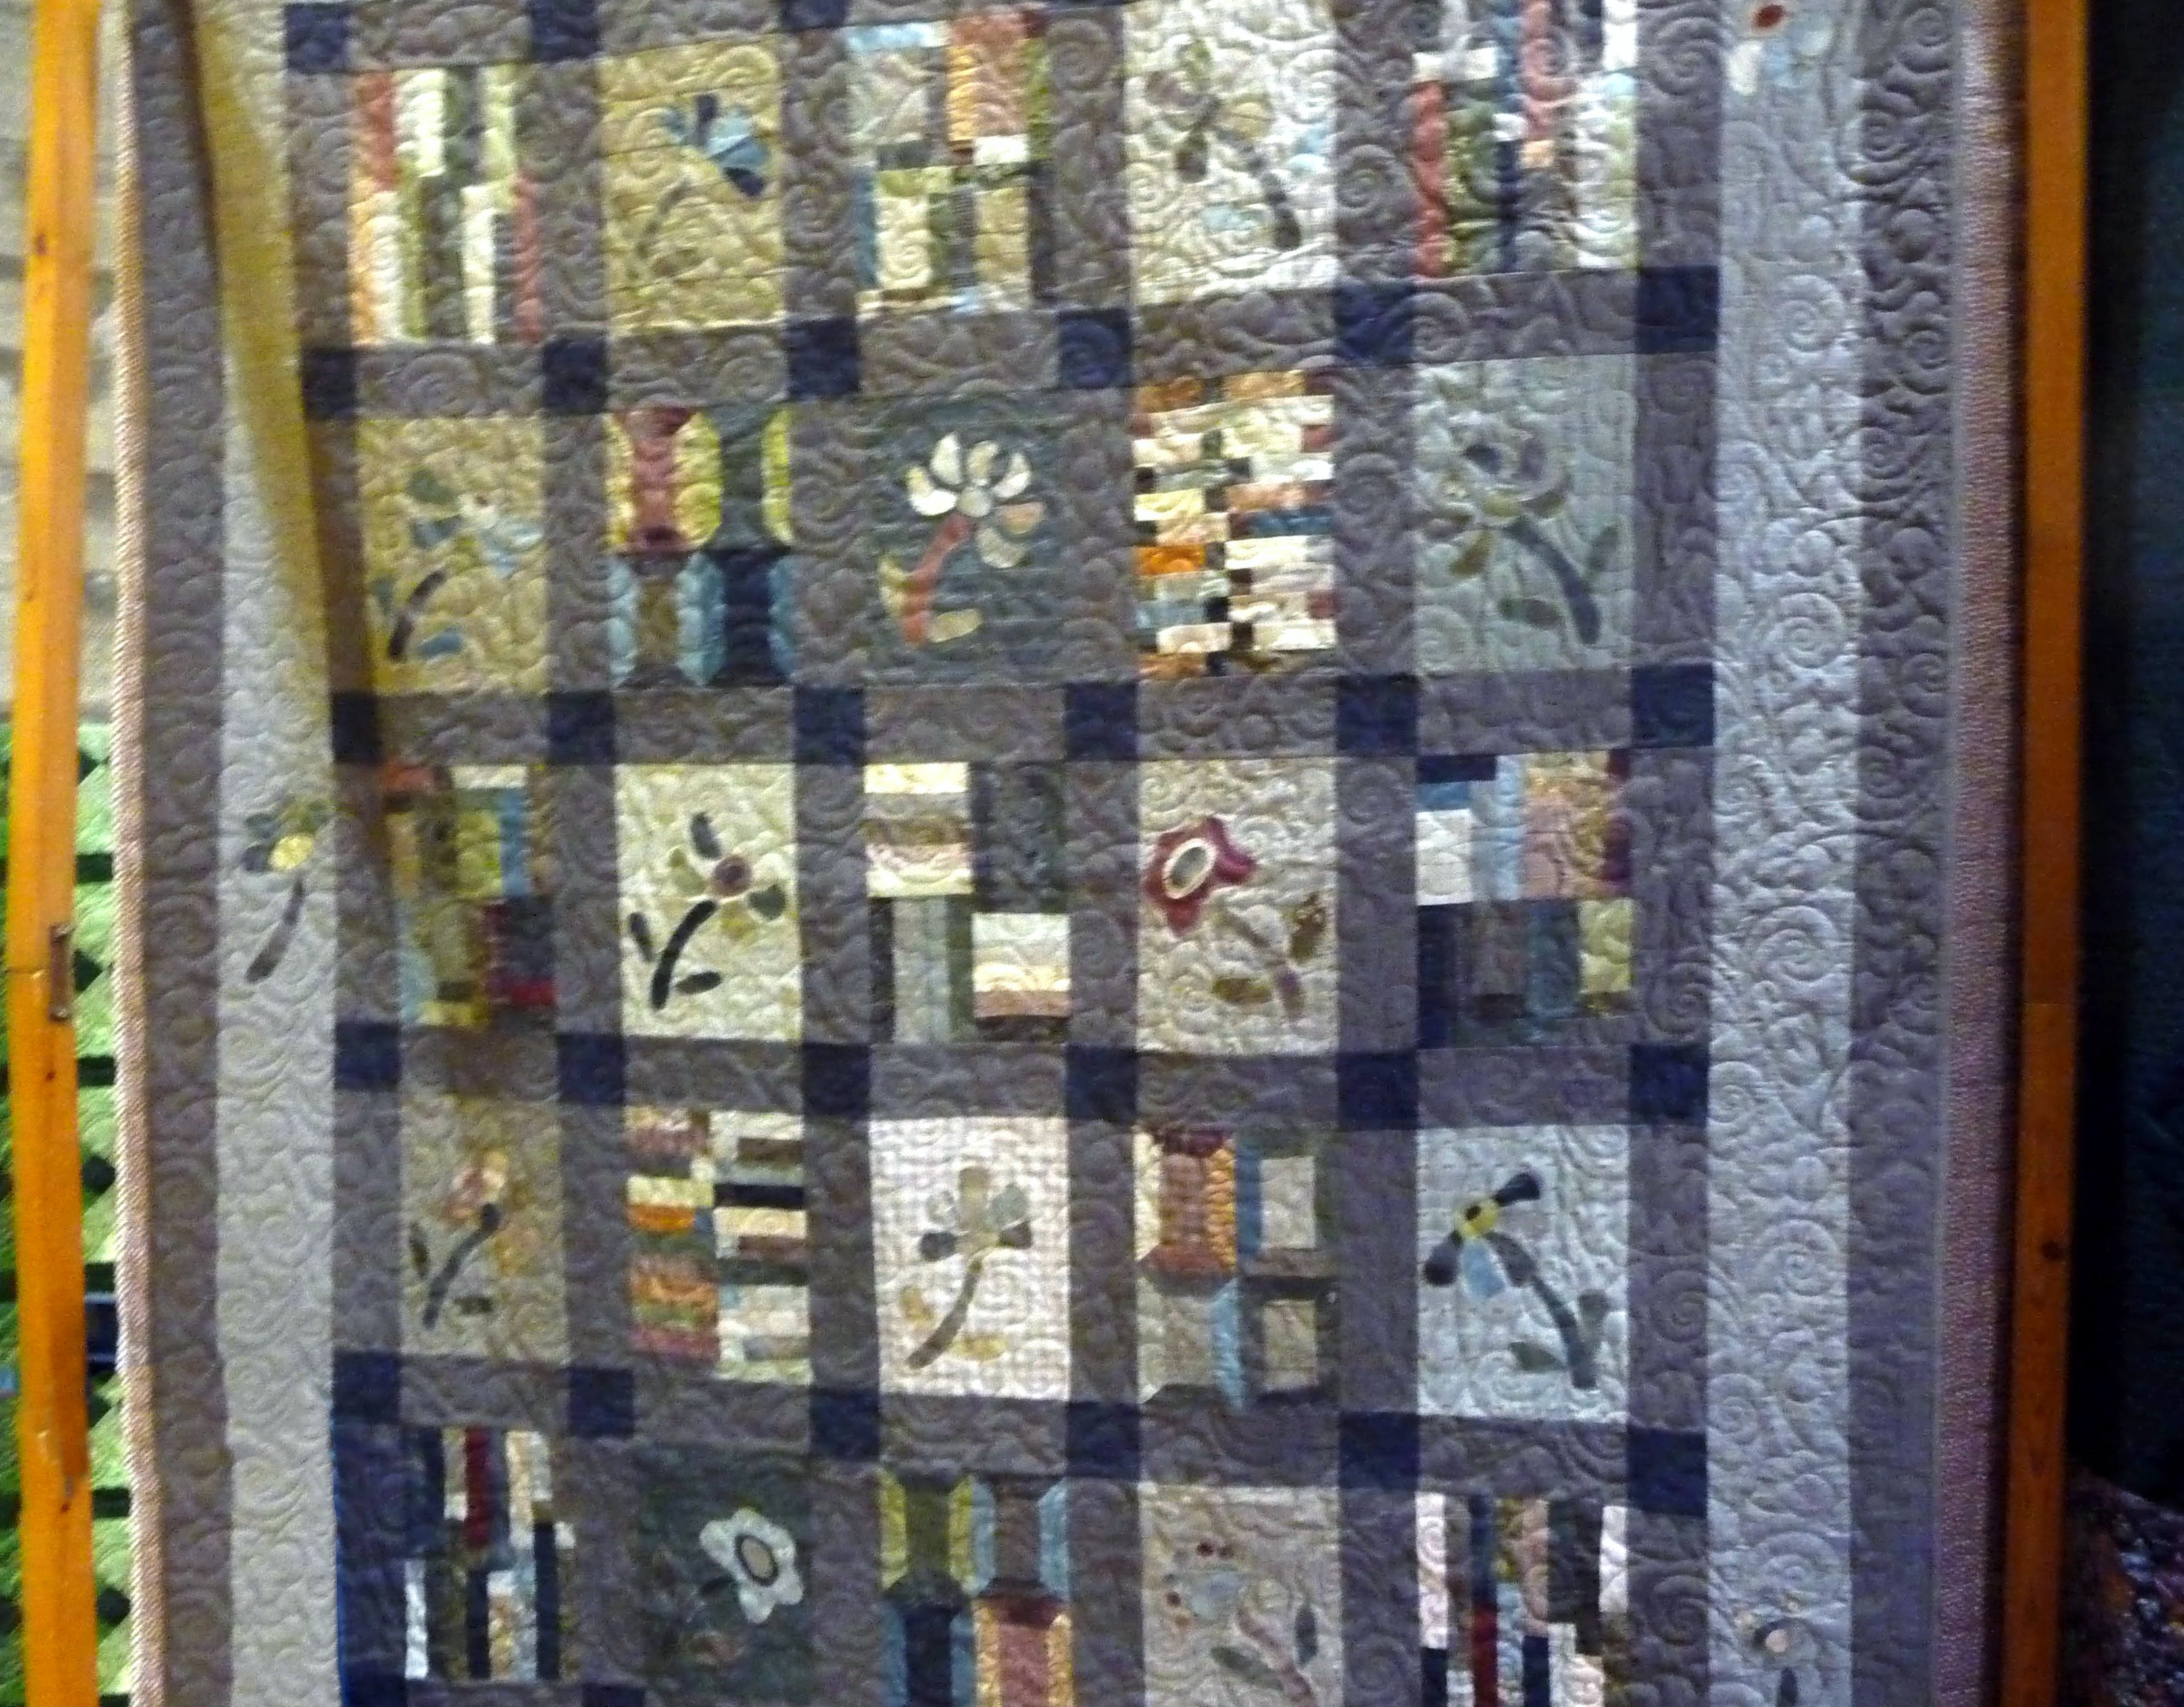 Quilt by Gill Chamberlain, Stitchin' Sisters Group